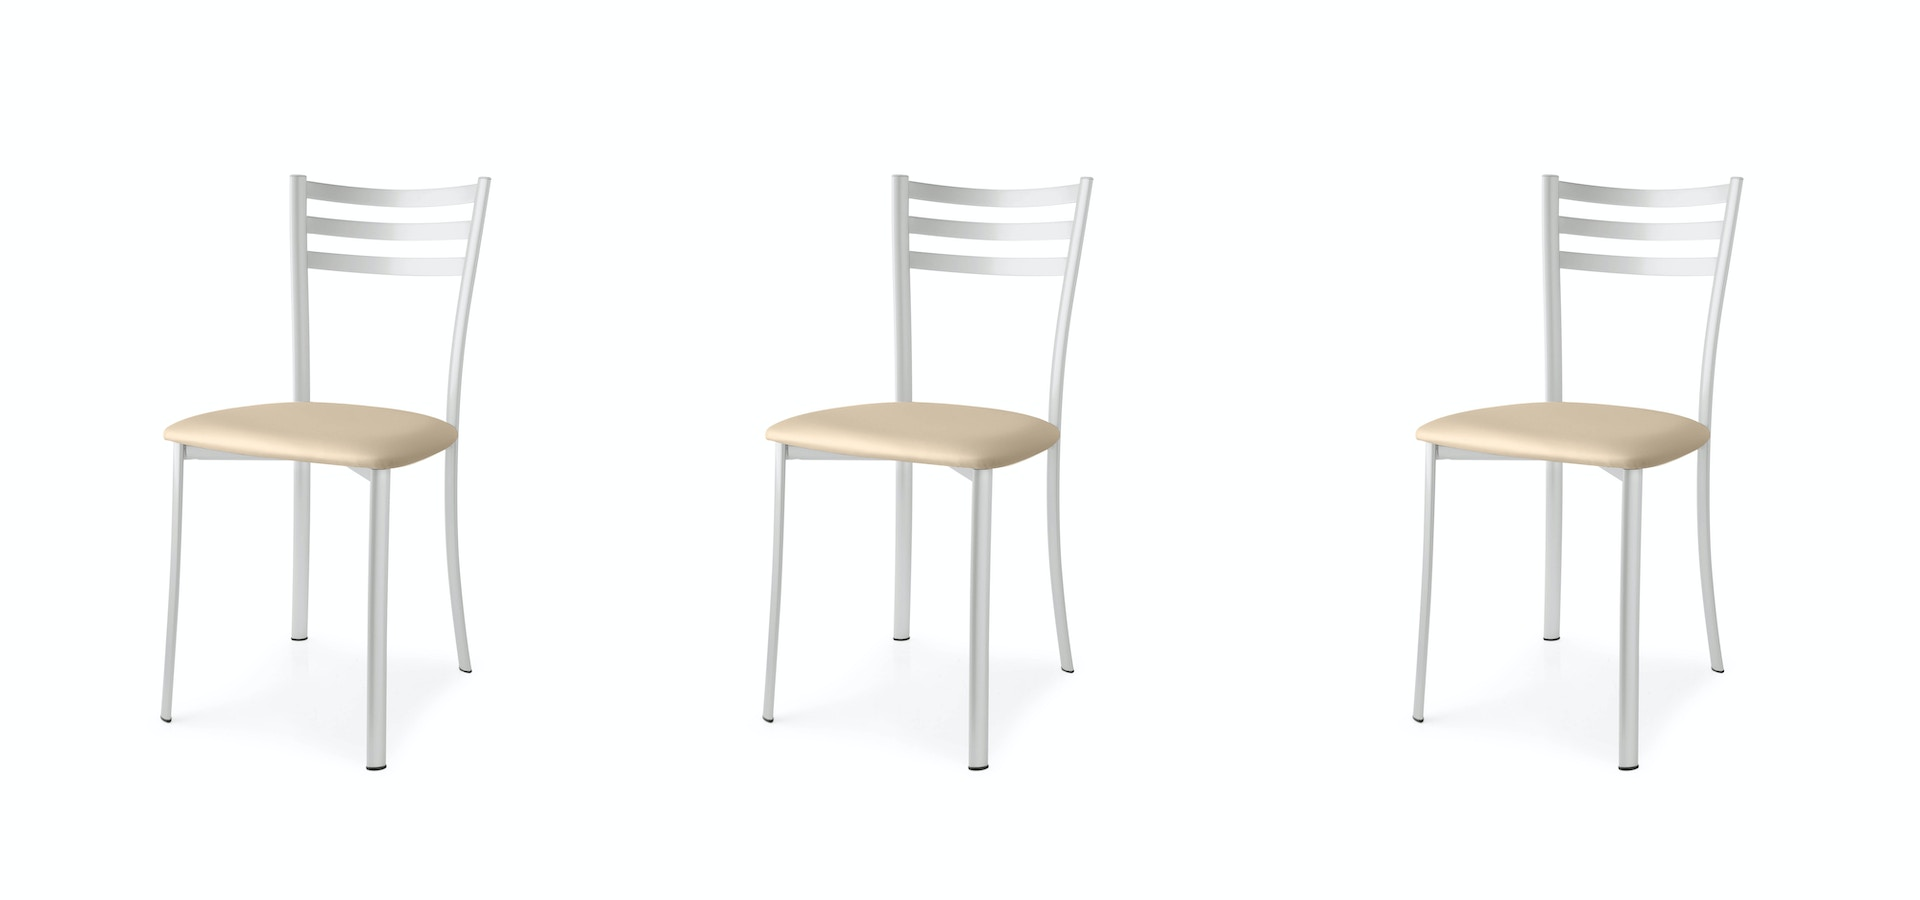 Chairs Stosa - Model Gerbera 10087